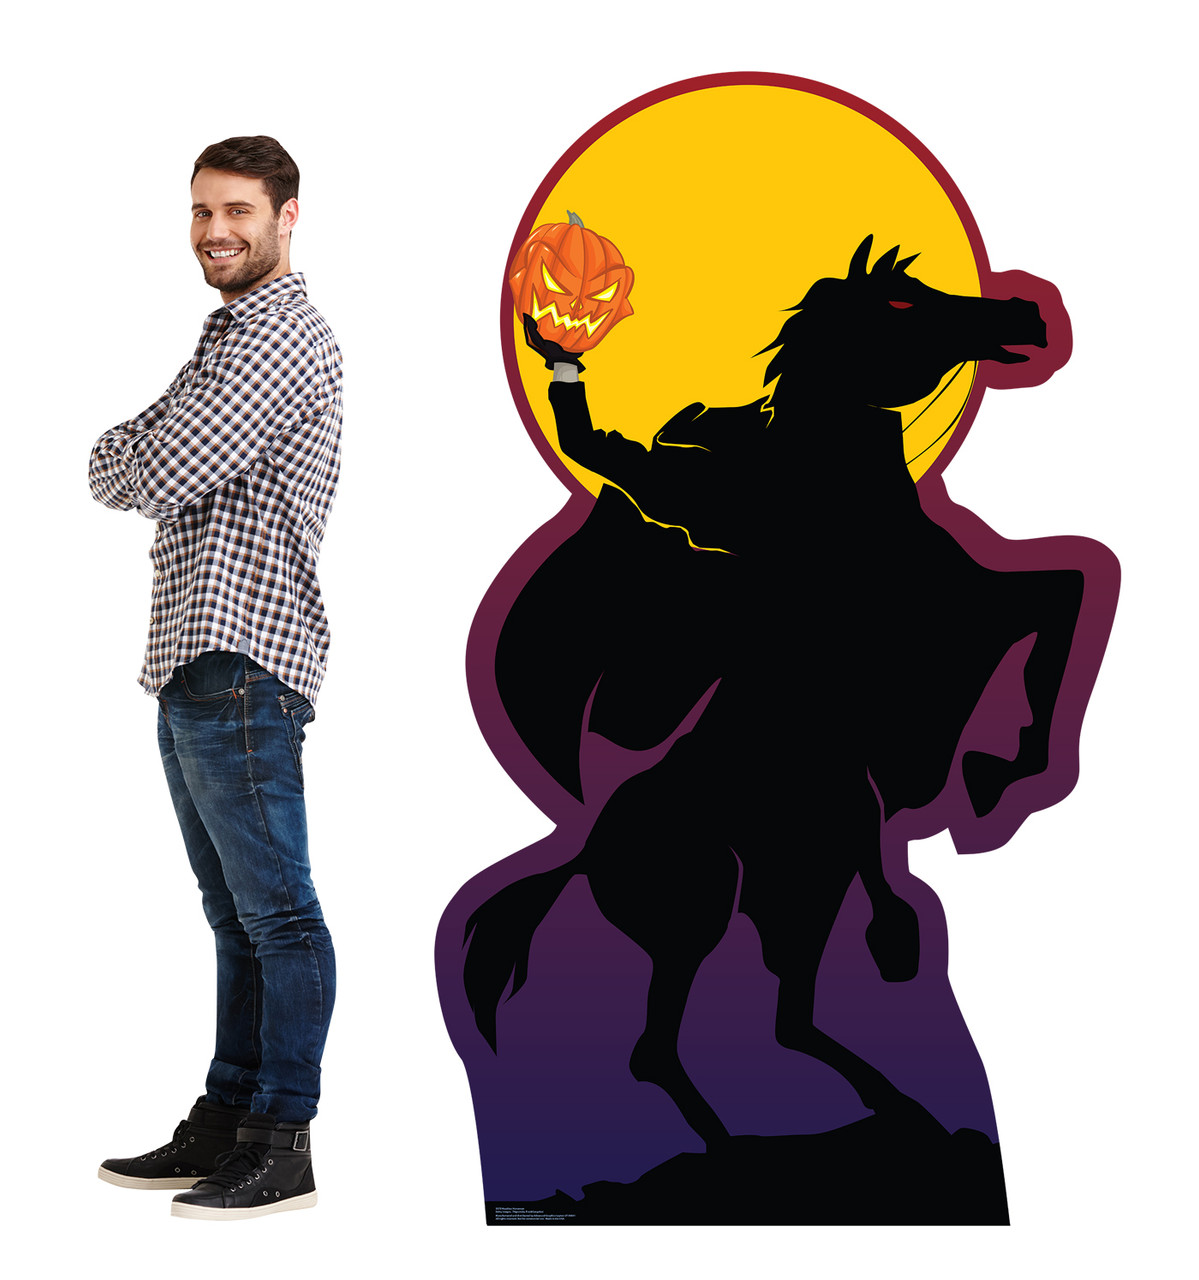 Life-size cardboard standee of the Headless Horseman with model.